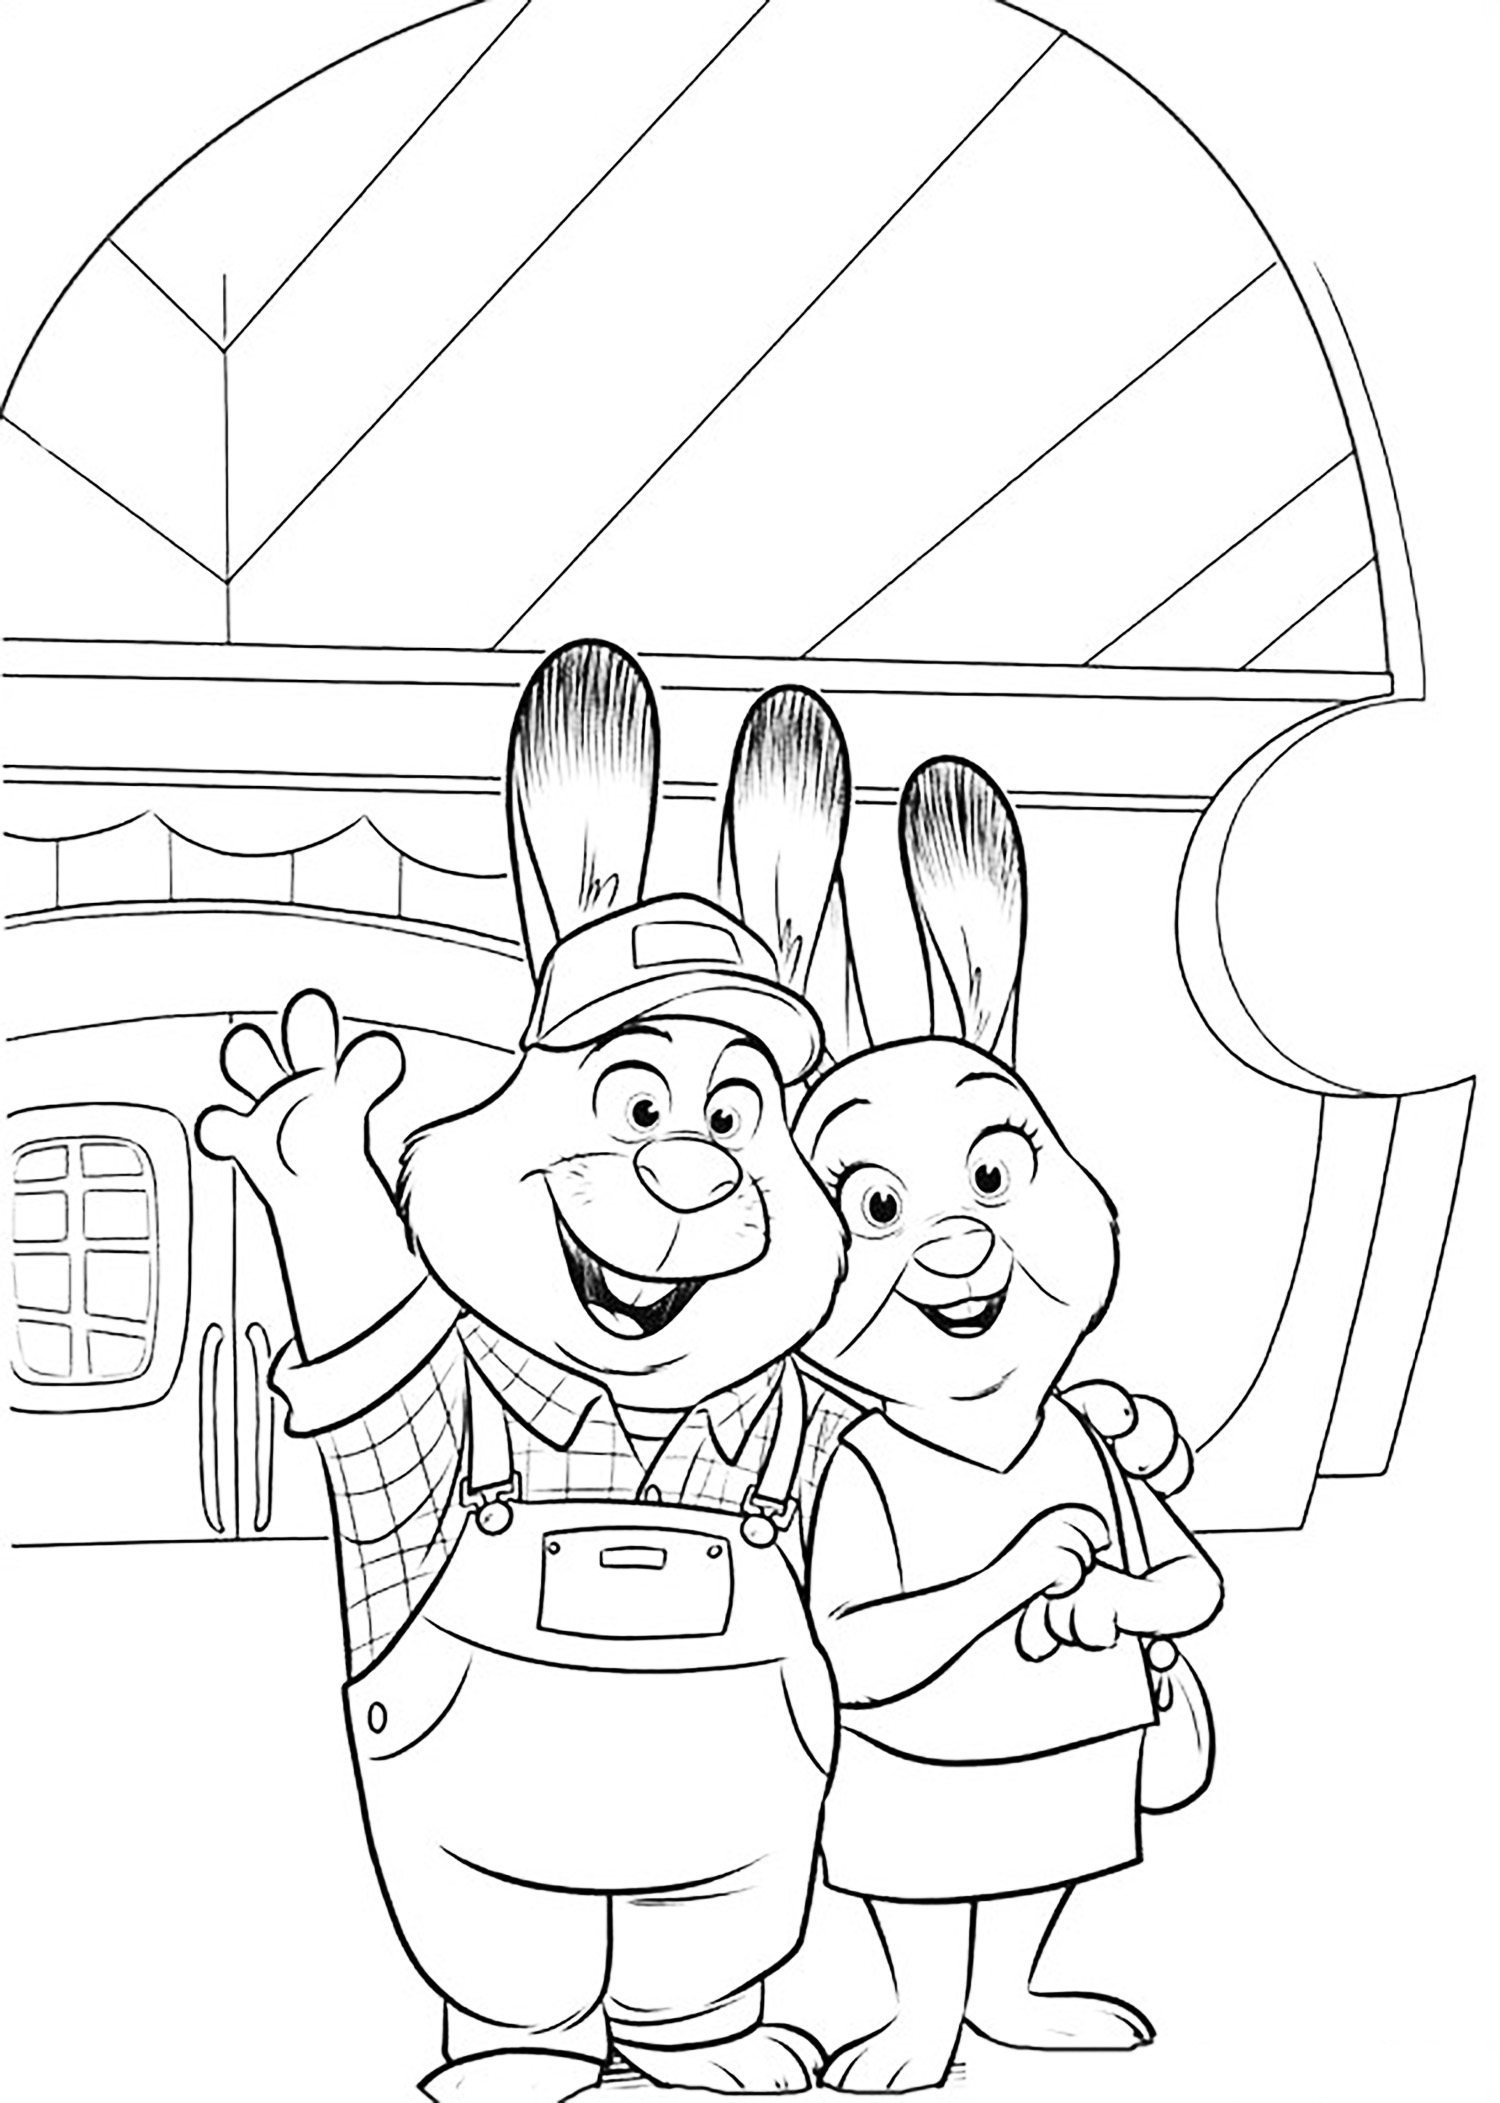 Zootopia to print Zootopia Coloring pages for kids